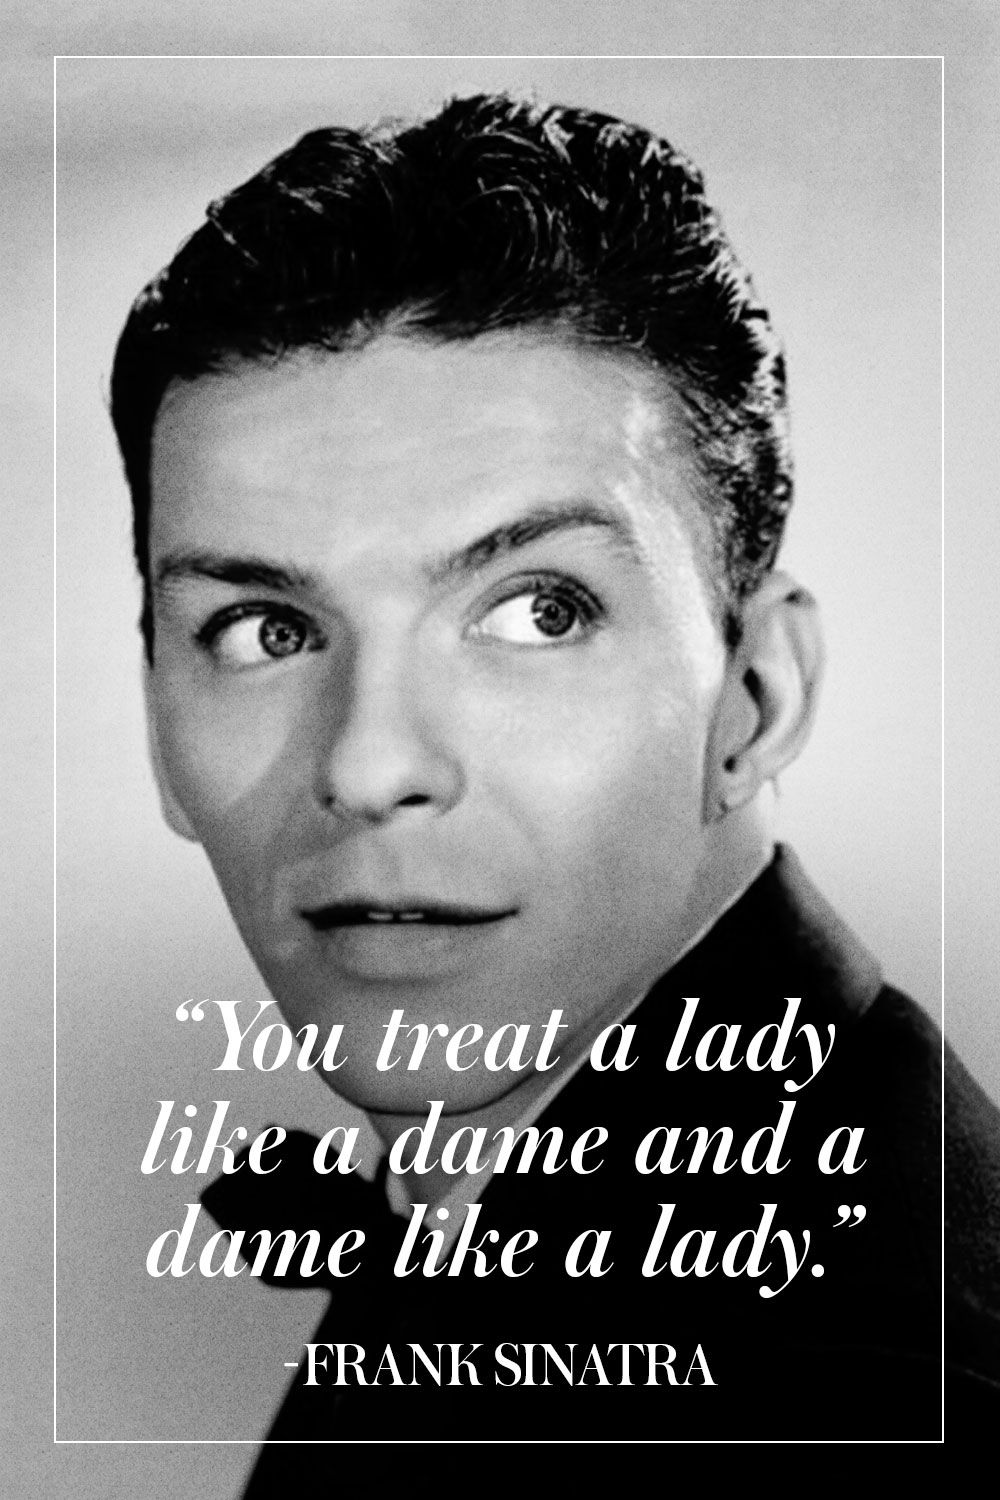 The Man The Myth The Legend Our Favorite Frank Sinatra Quotes